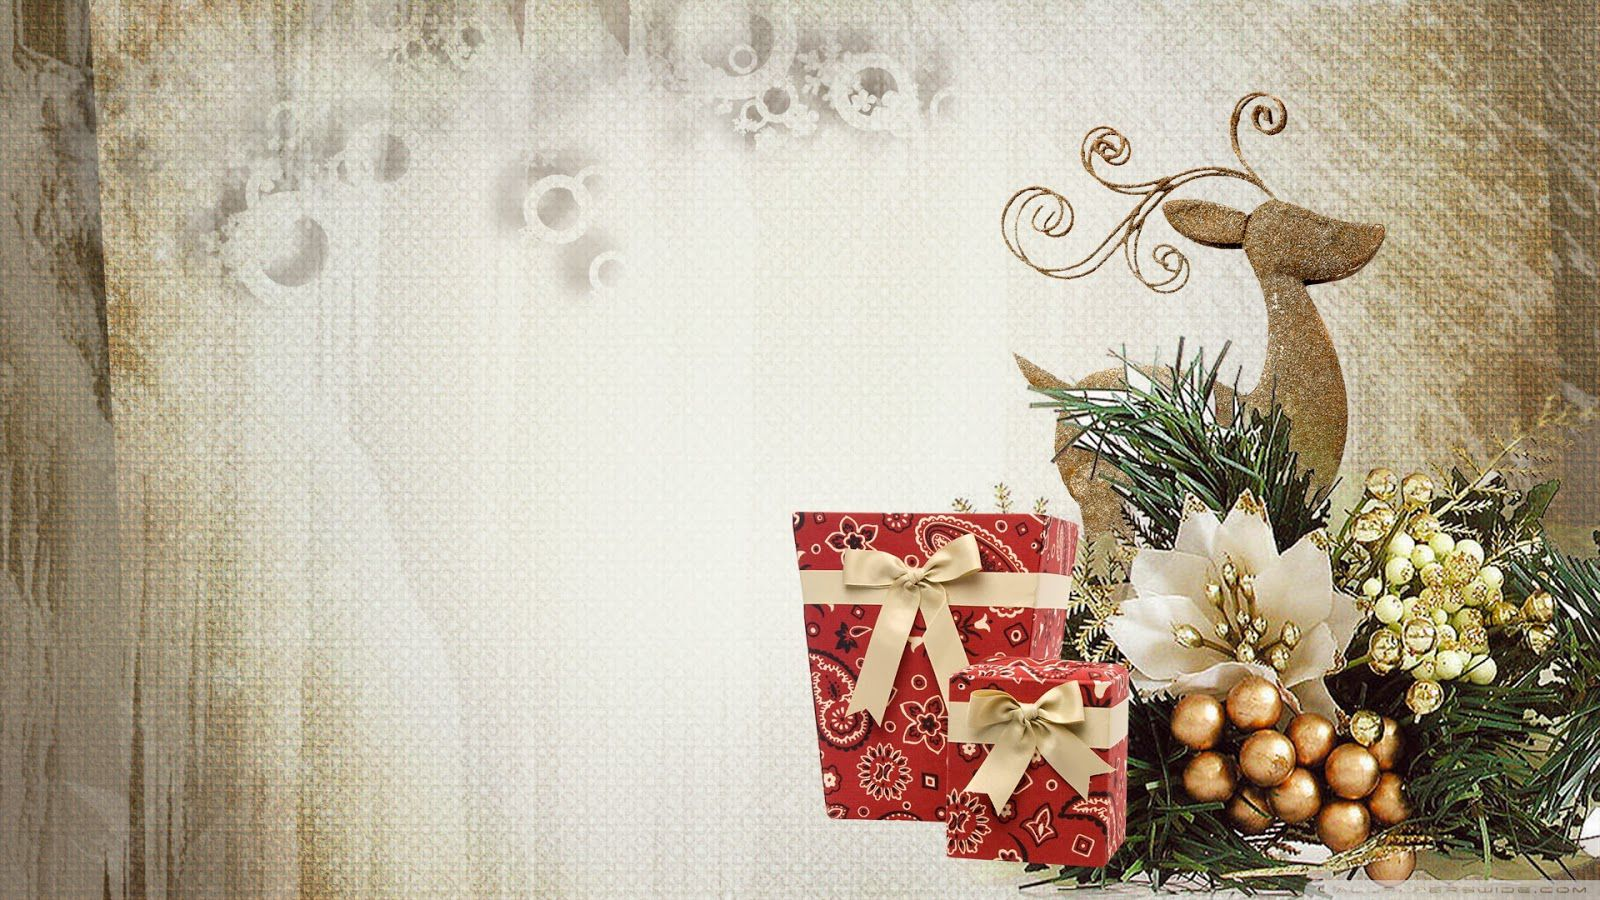 49 Elegant HD 2018 Wallpapers of Christmas for Mobile Desktop 1600x900